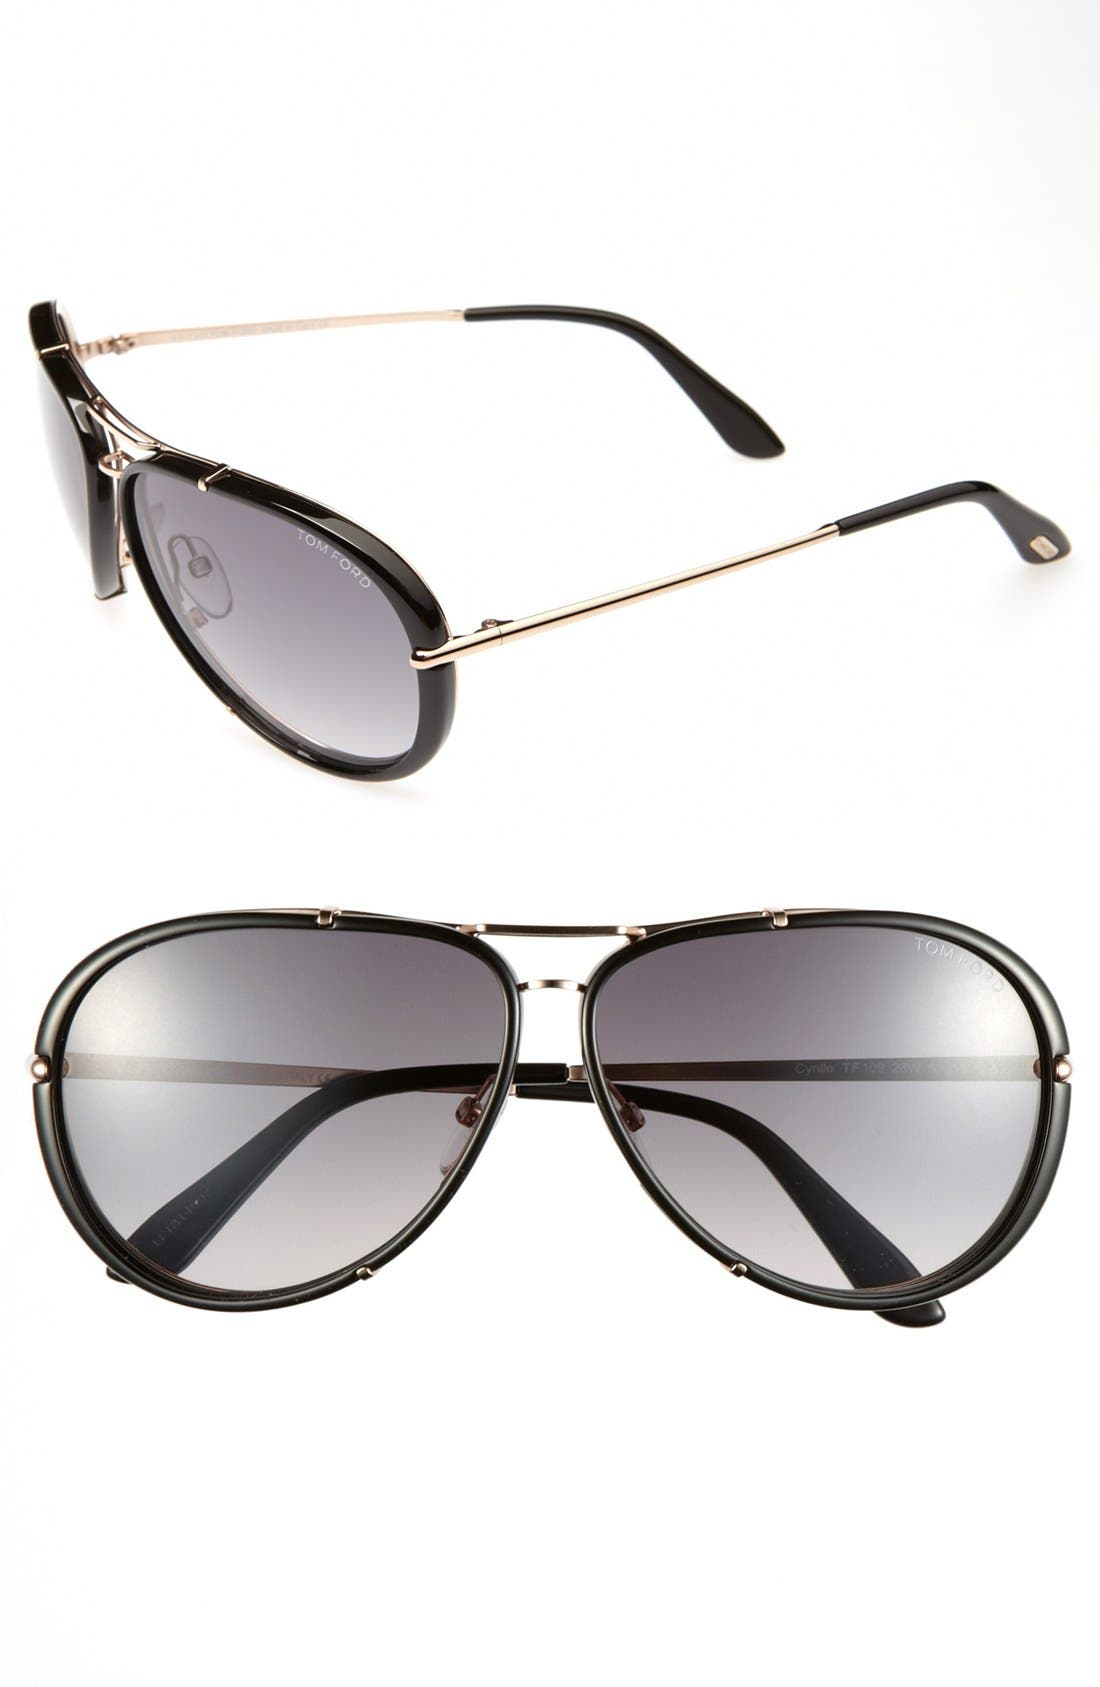 Main Image - Tom Ford 'Cyrille' 63mm Aviator Sunglasses